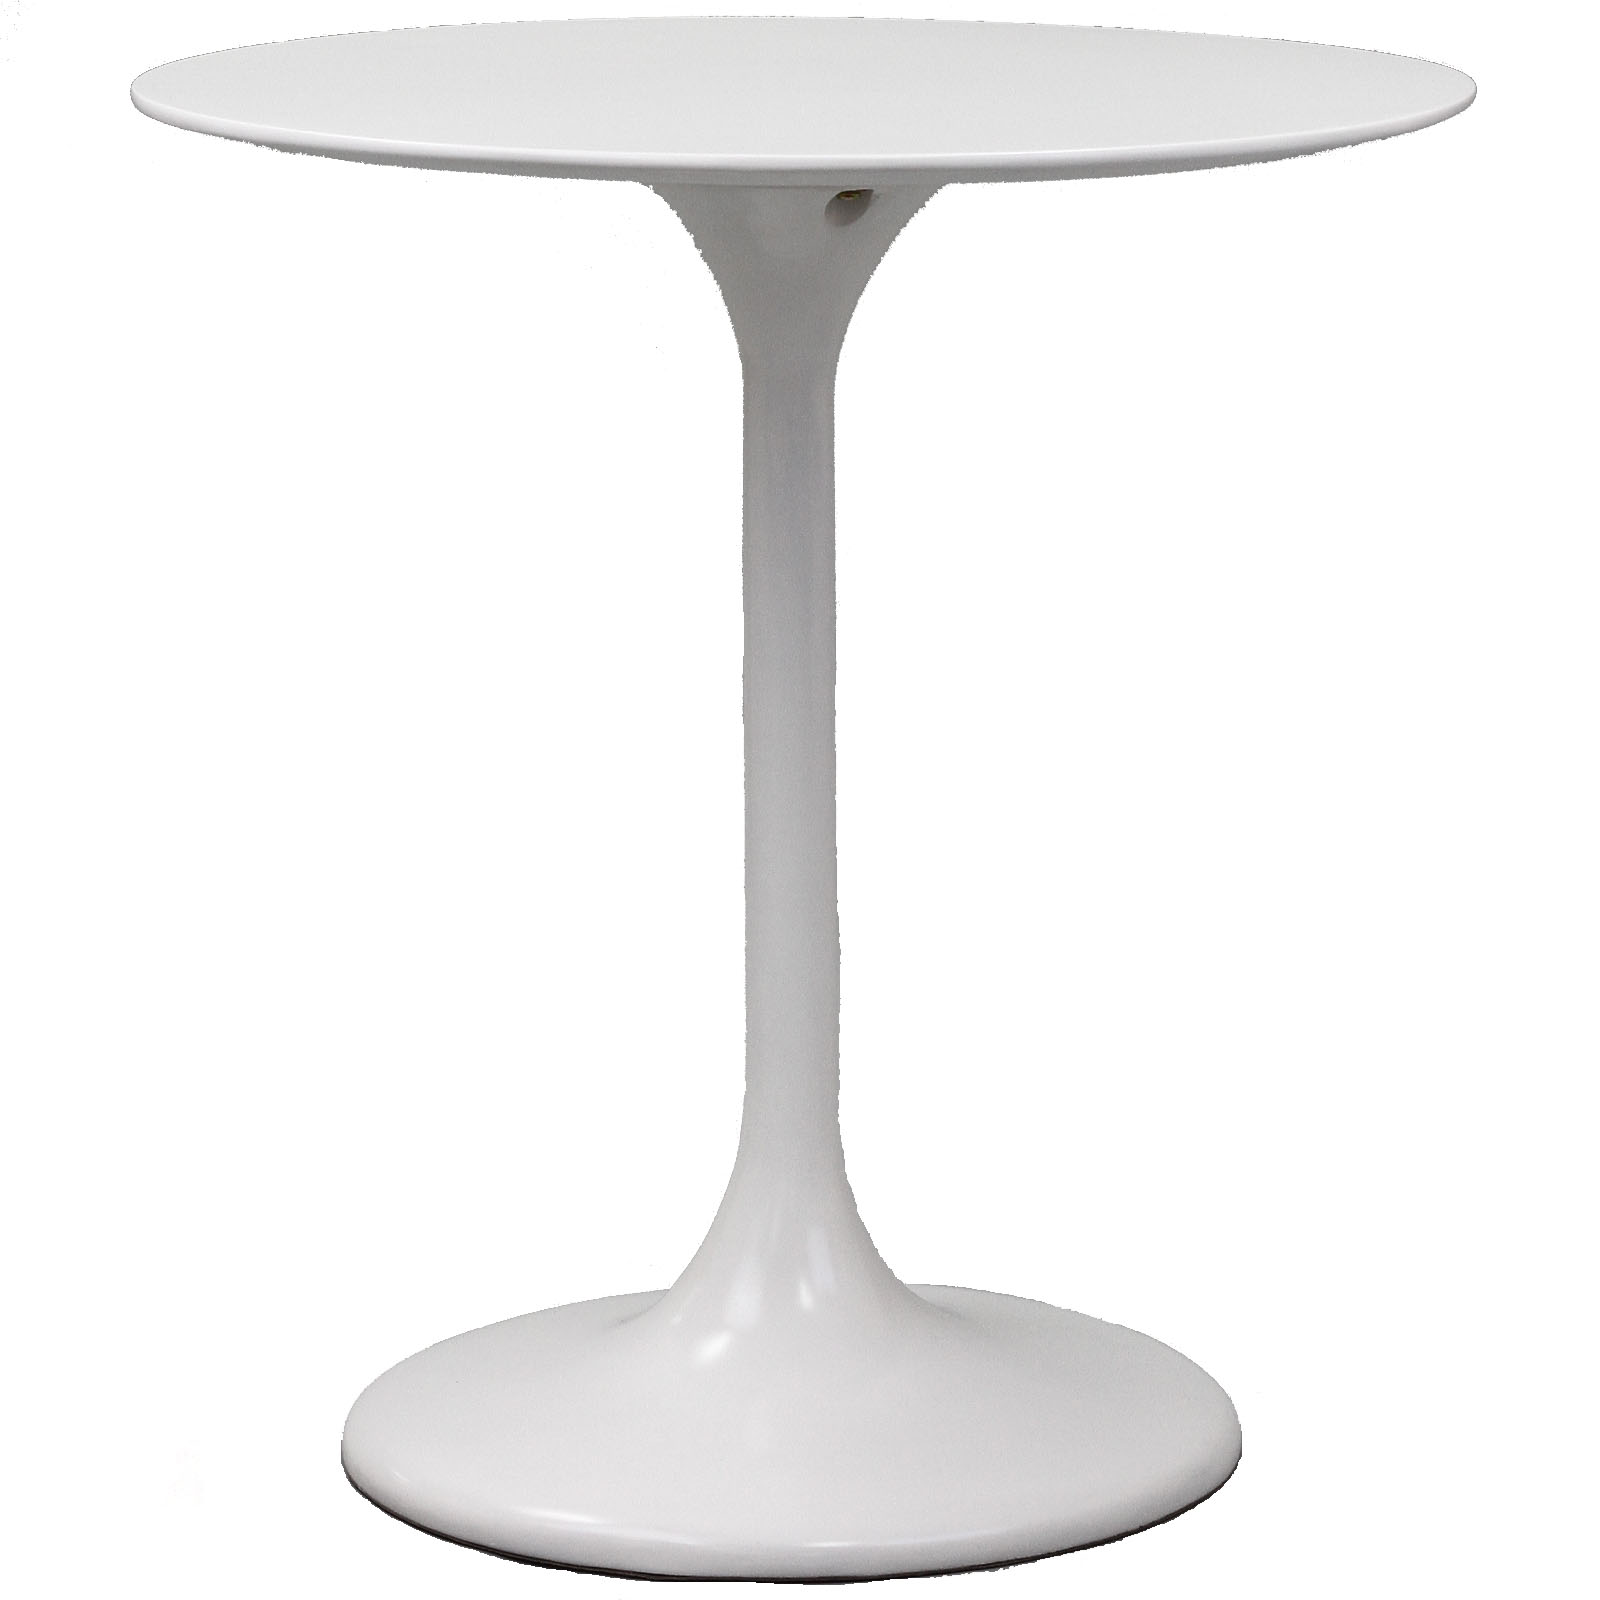 Lippa Fiberglass Dining Table - [EEI-513]